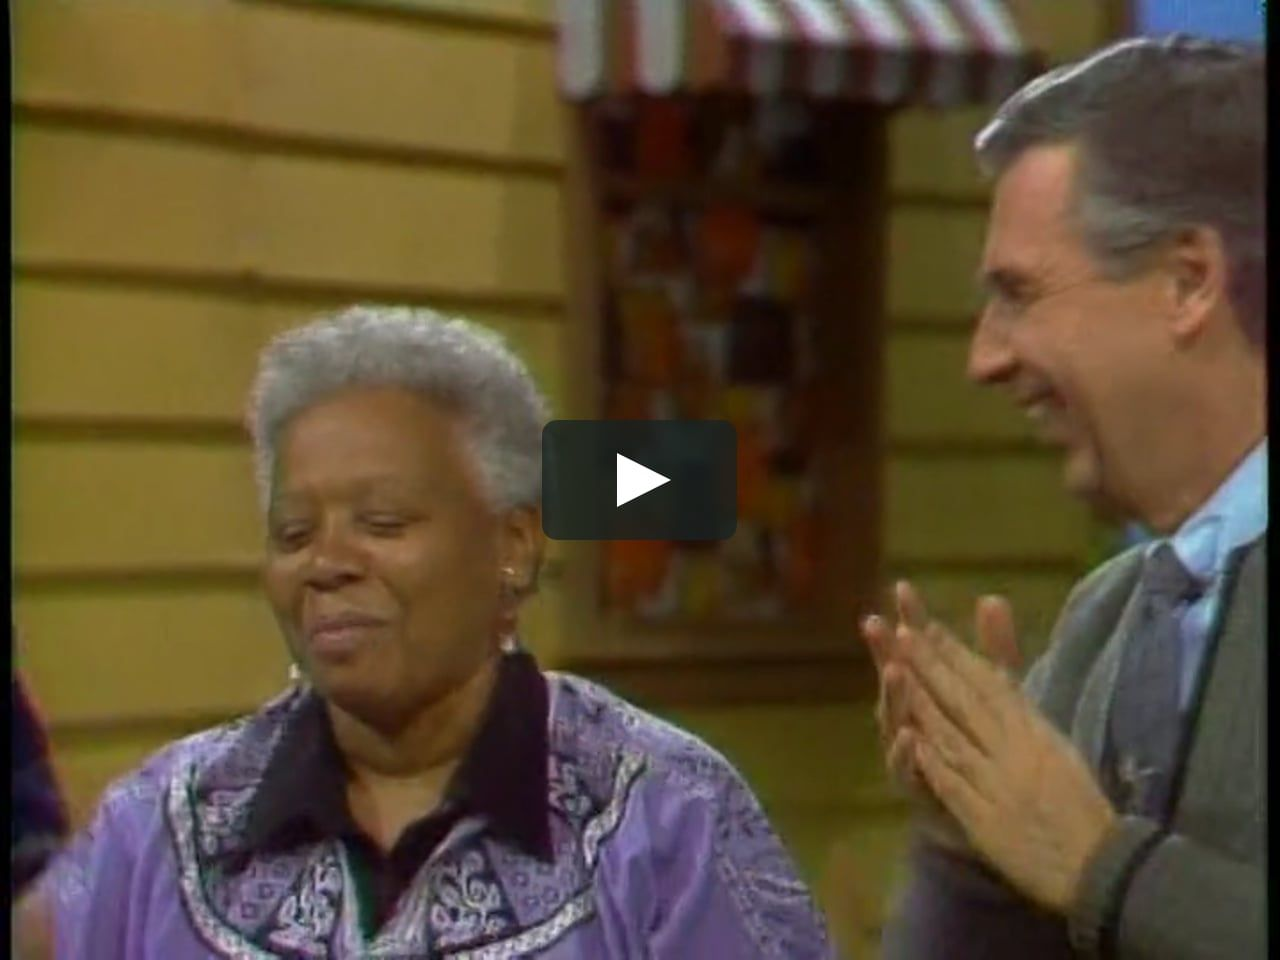 This Is Ella Jenkins Teaches Mister Rogers Head And Shoulders By Fred Rogers Productions On Vimeo The Home For High Qualit Mr Rogers Vimeo Video Streaming